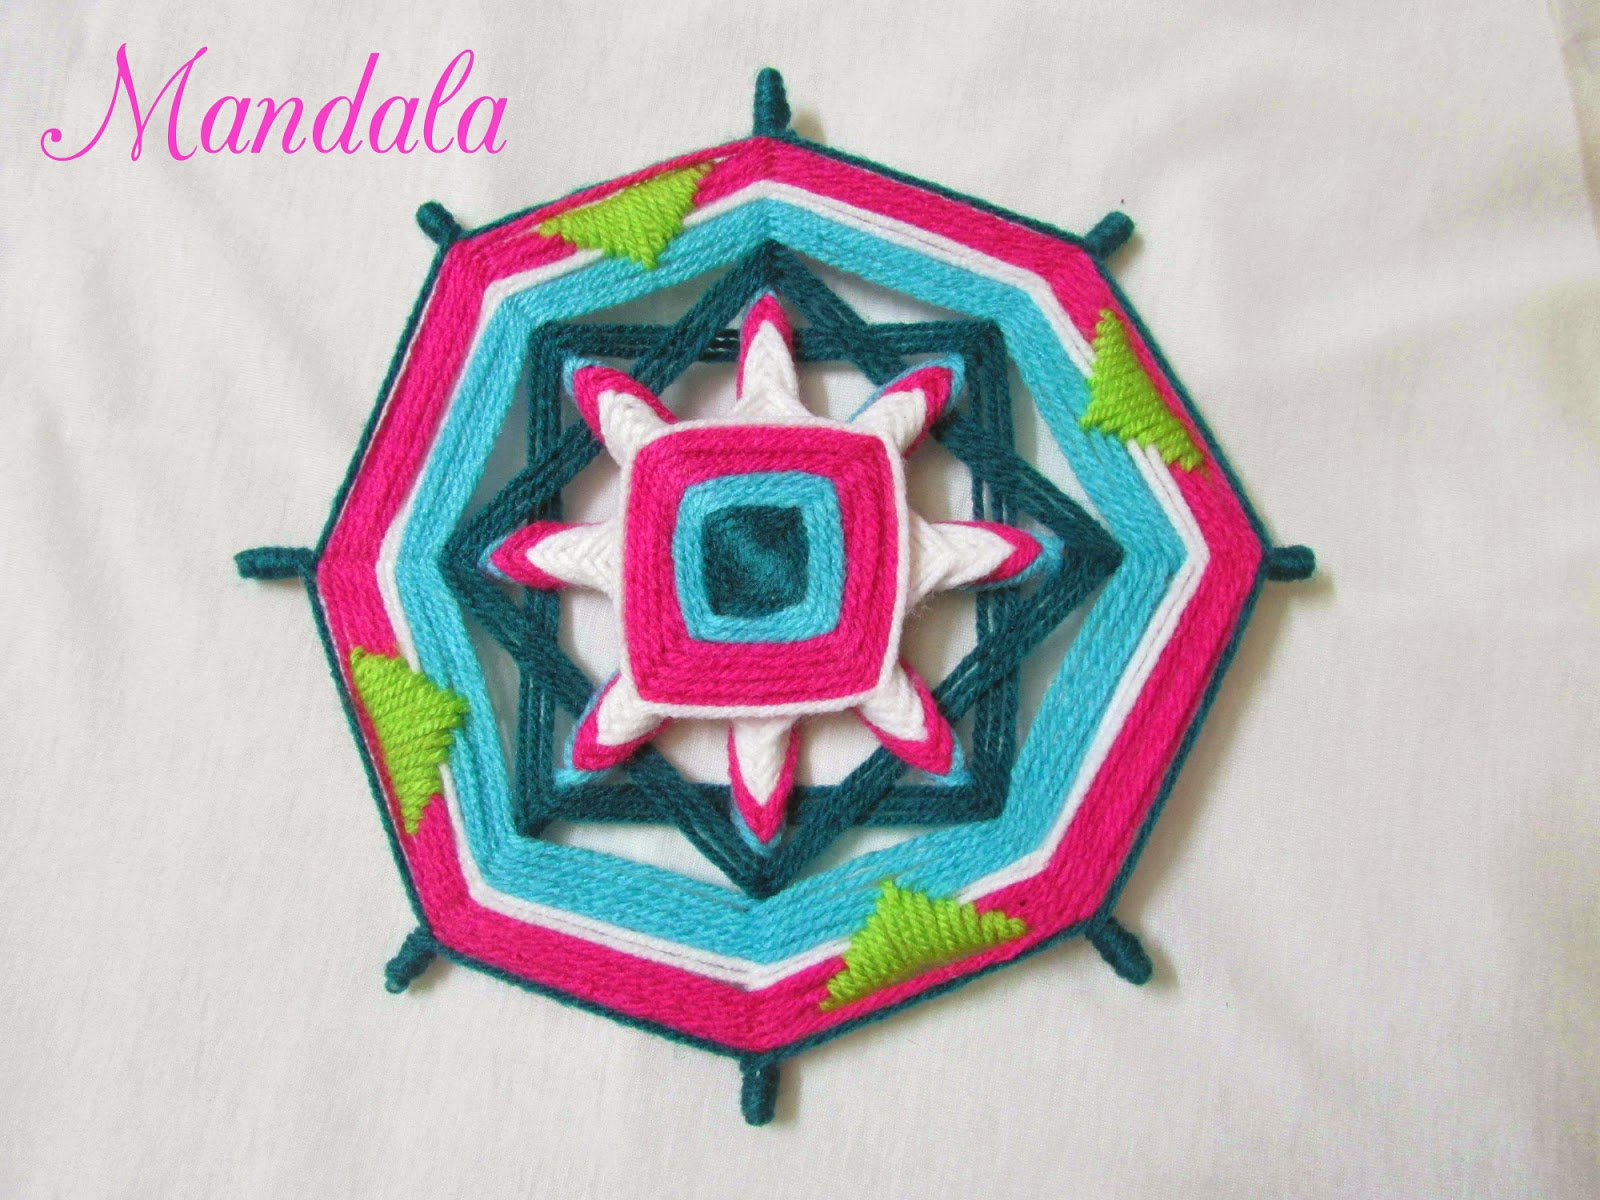 thisnthat, mandala, circle of life , how to bring energy in life, how to bring positive energy in life, uses of mandala, how to make mandala, religious mandala, hindu mandala, buddhist mandala, spitural importance of mandala, healing powers